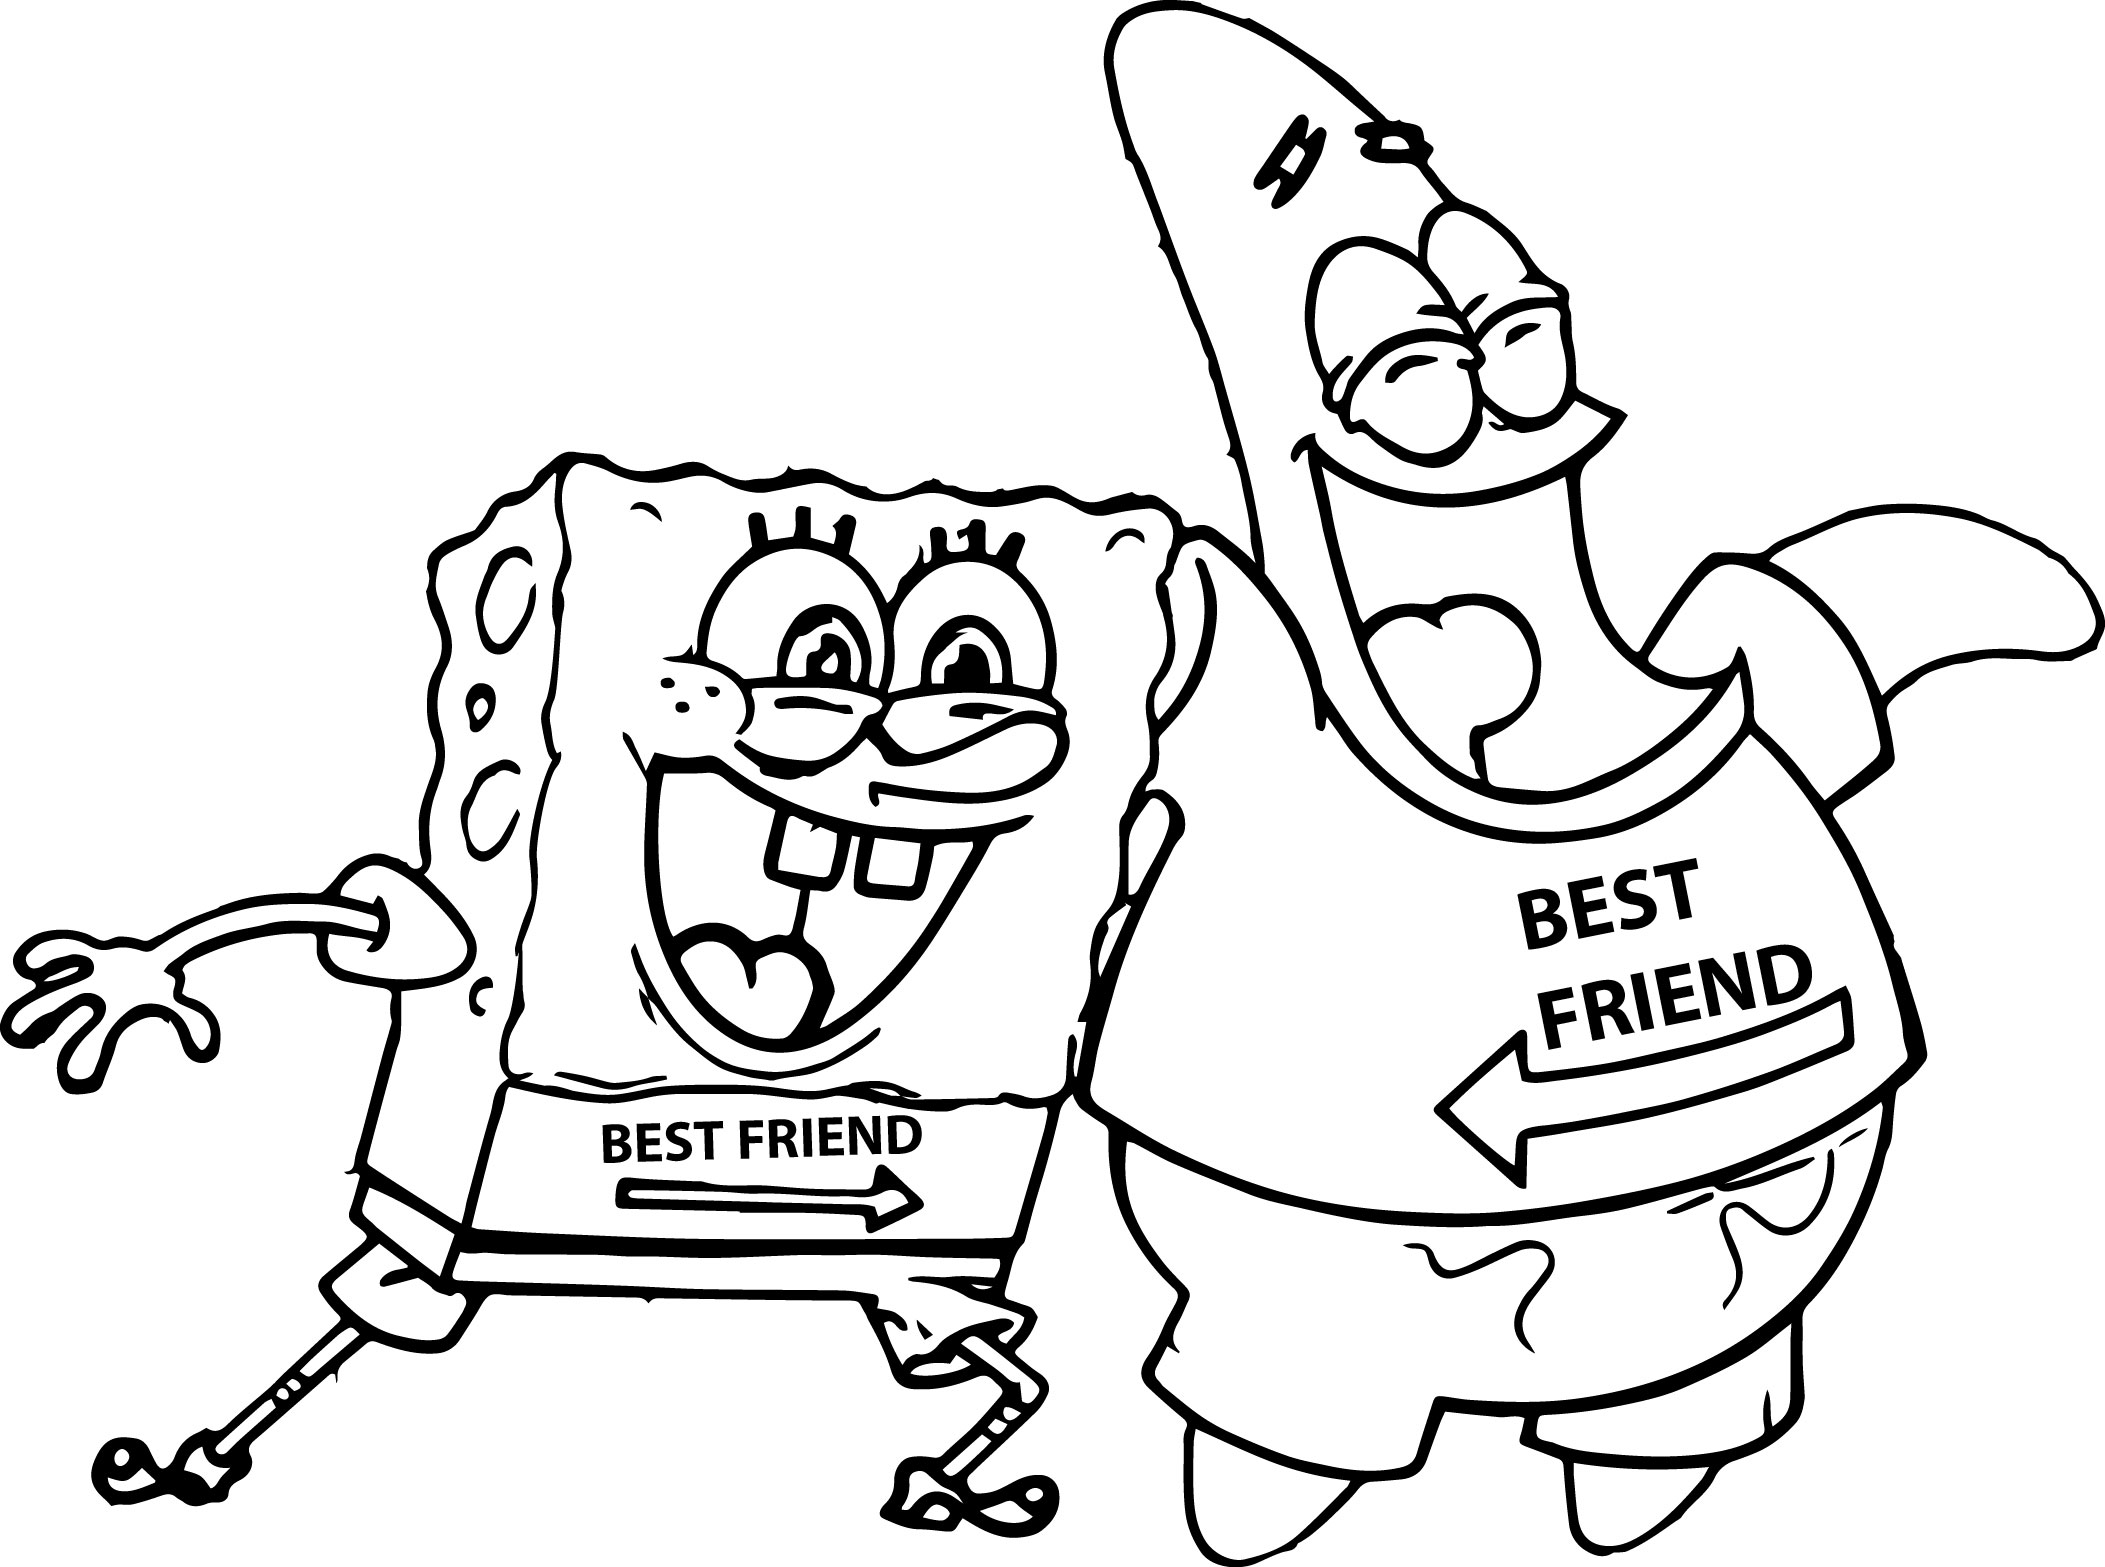 spongebob characters coloring pages printable spongebob coloring pages for kids cool2bkids characters coloring spongebob pages